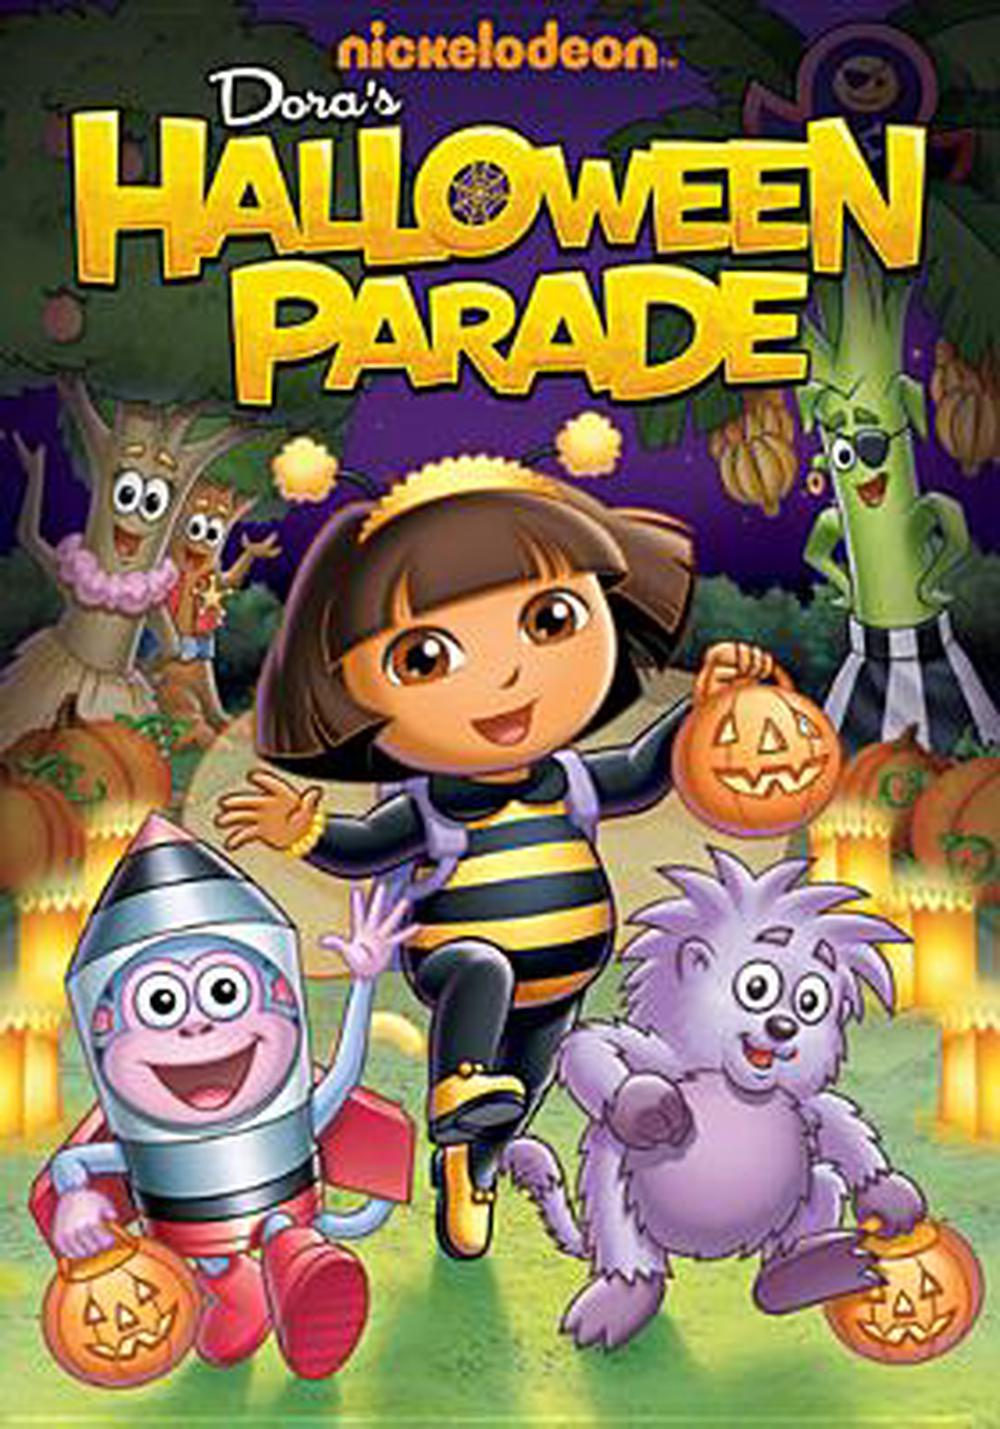 dora the explorer:halloween parade - dvd region 1 free shipping! | ebay